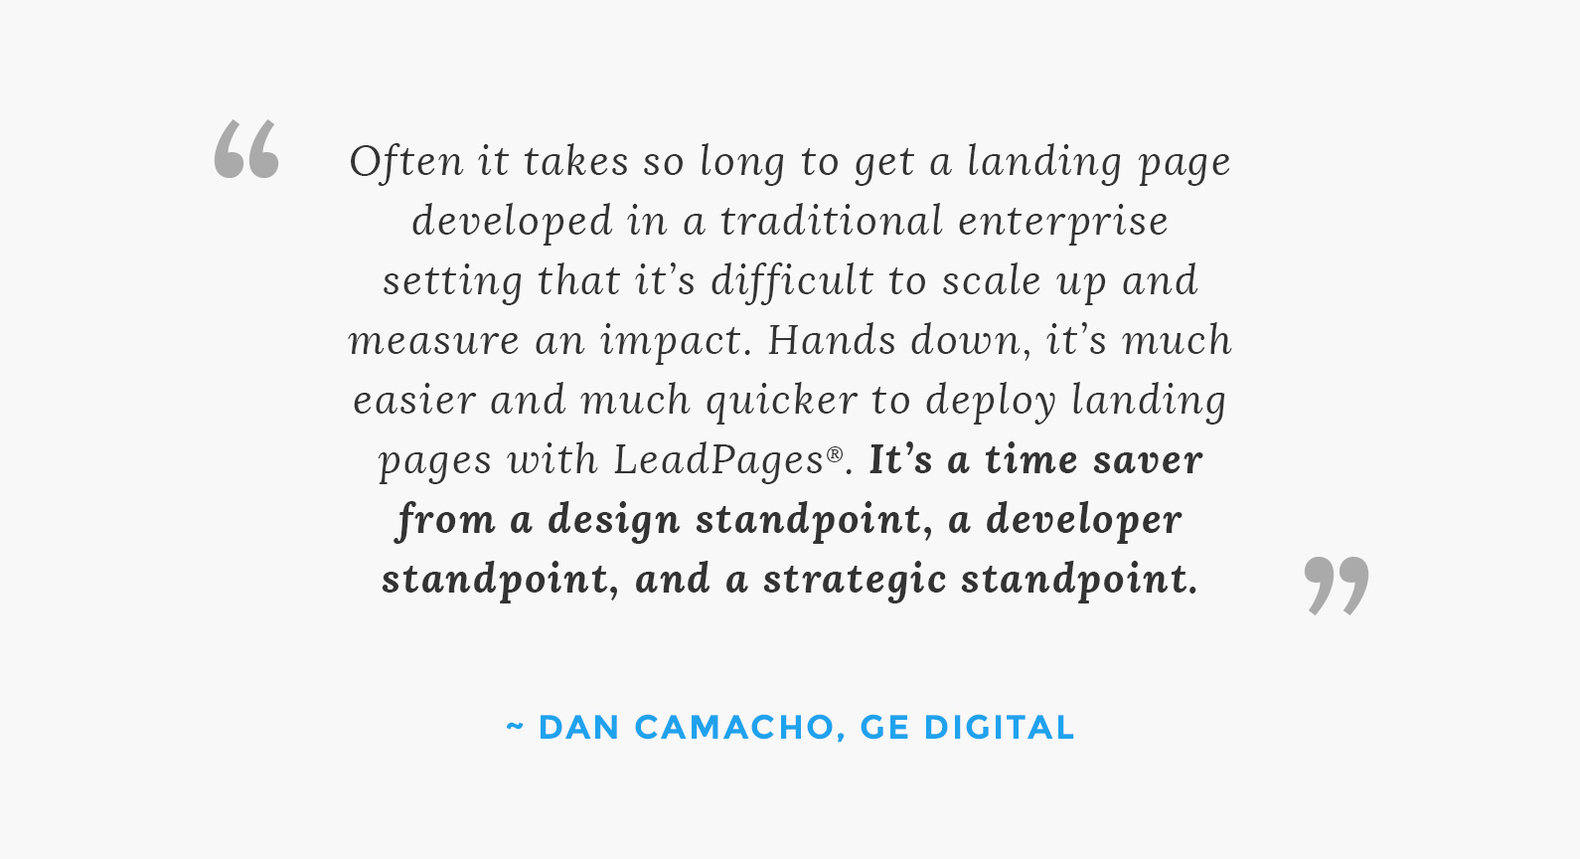 """Often it takes so long to get a landing page developed in a traditional enterprise setting that it's difficult to scale up and measure an impact. Hands down, it's much easier and much quicker to deploy landing pages with LeadPages®. It's a time saver from a design standpoint, a developer standpoint, and a strategic standpoint."" – Dan Camacho"